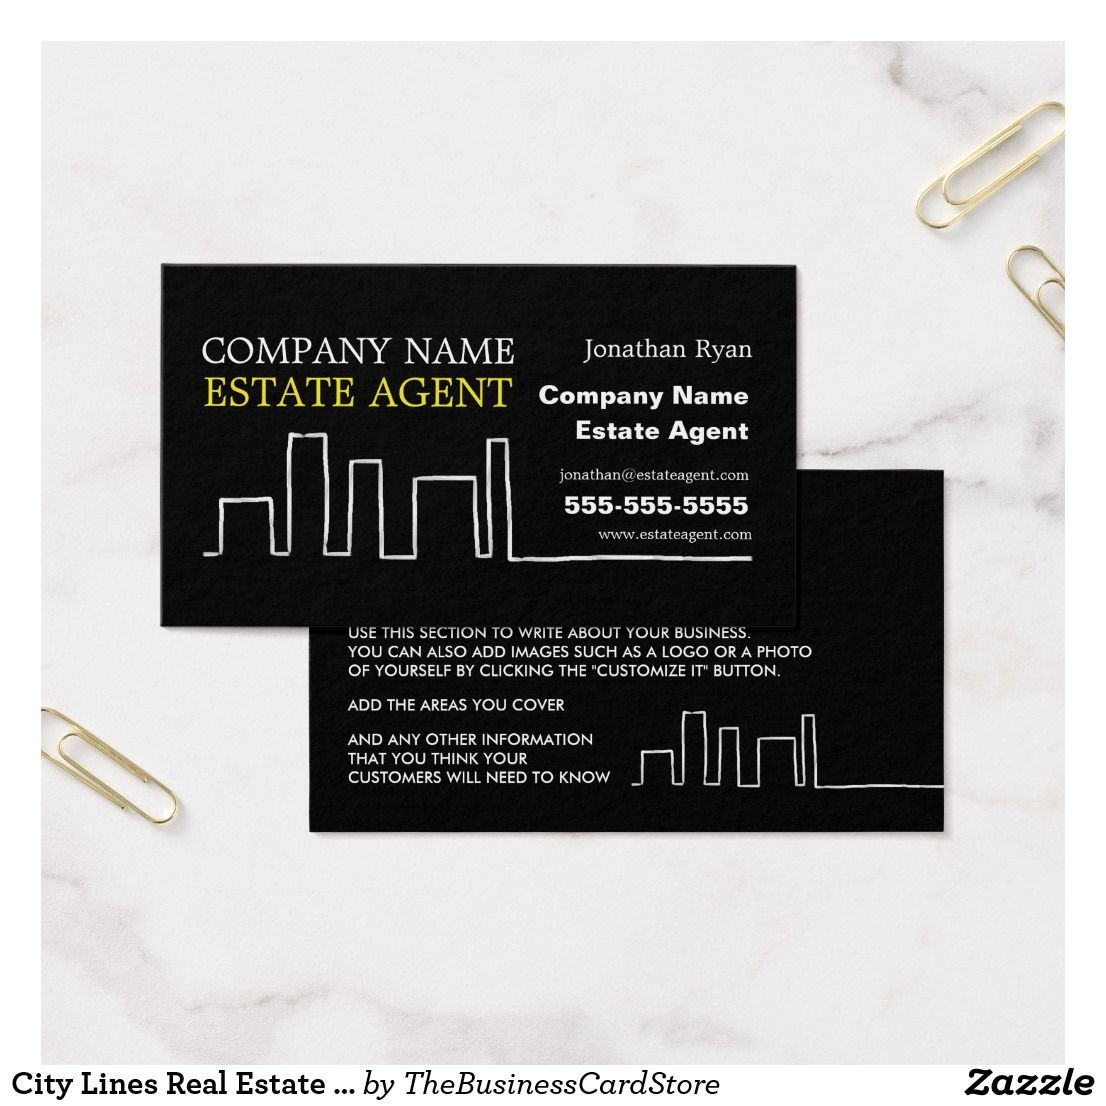 City Lines Real Estate Agent Estate Agent Business Card   Business ...